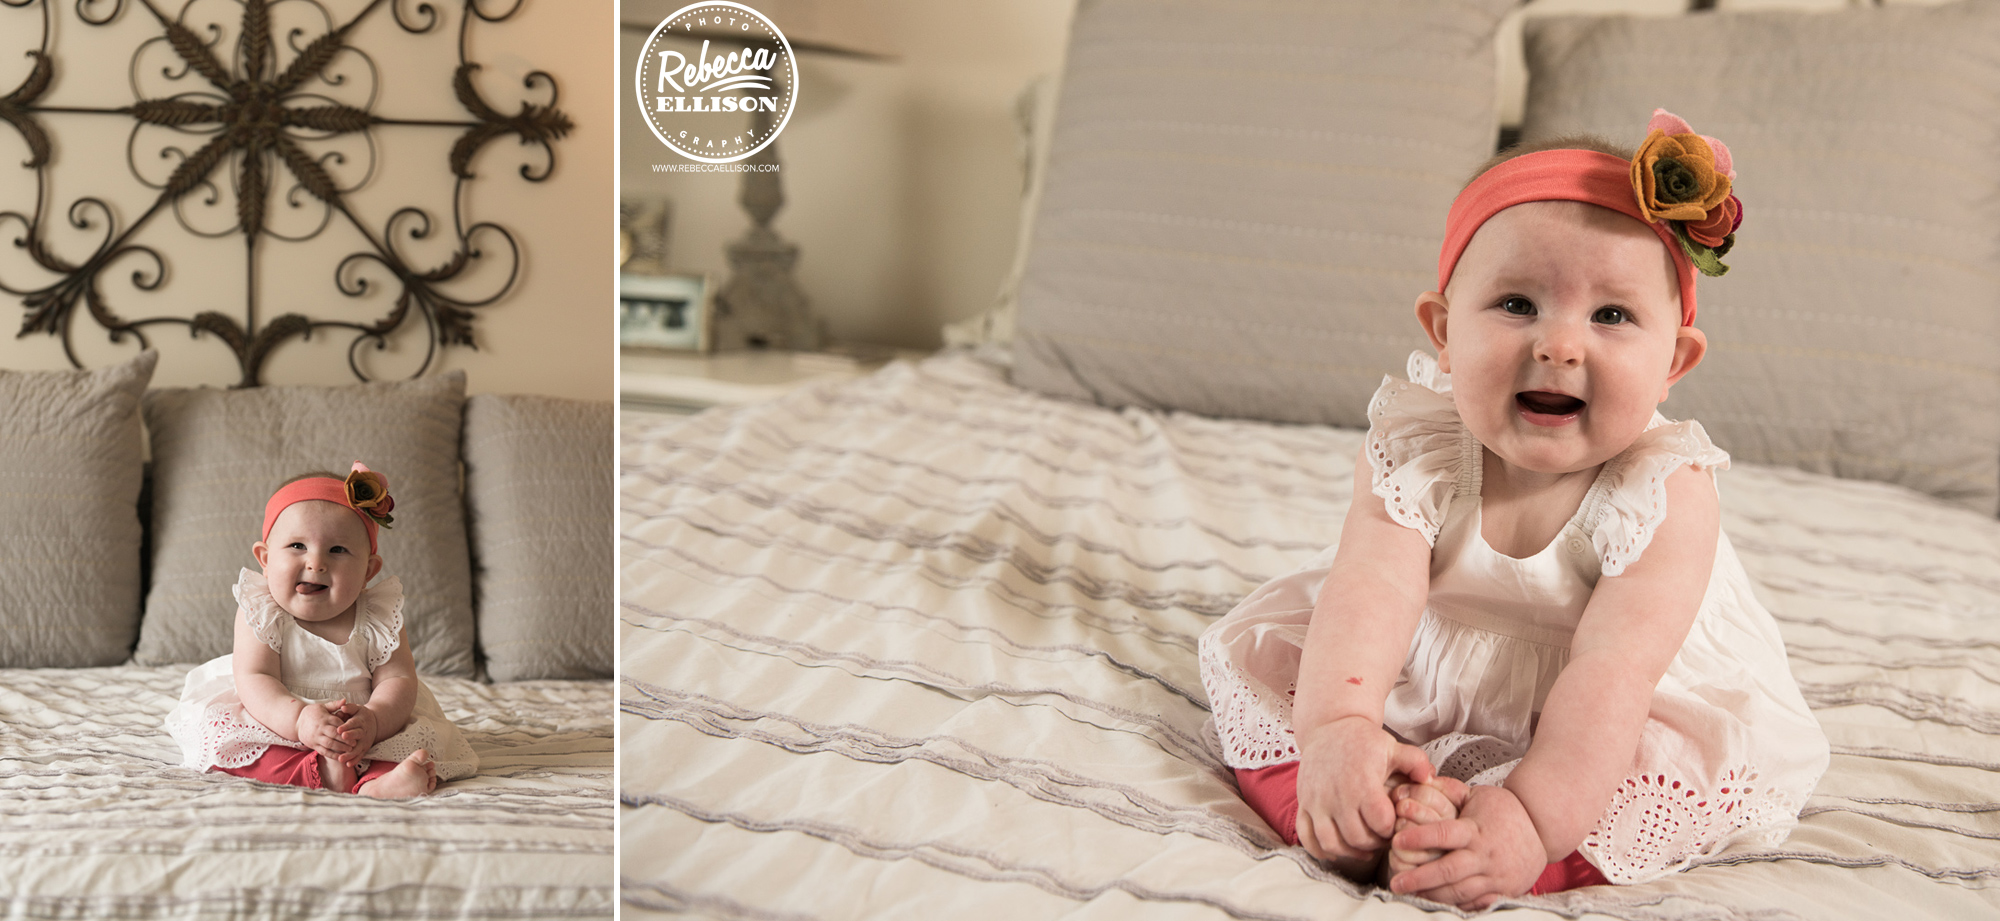 Baby sits on a bed during a lifestyle photography session photographed by bellevue photographer Rebecca Ellison